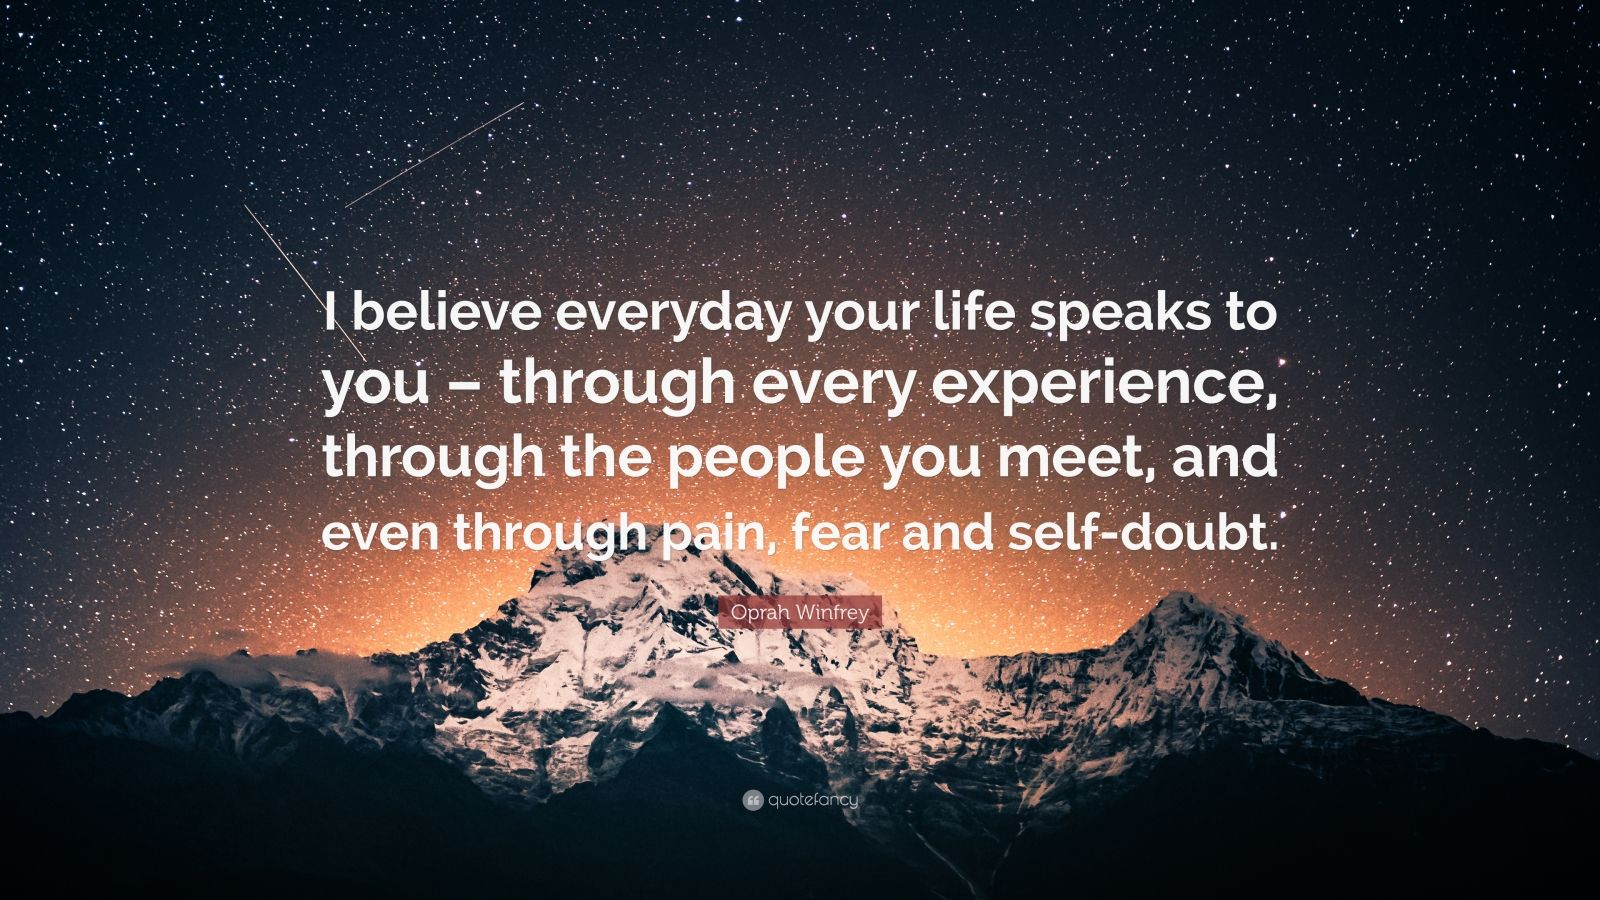 """Oprah Winfrey Quote: """"I believe everyday your life speaks to you – through every experience, through the people you meet, and even through pain, fear and self-doubt."""""""